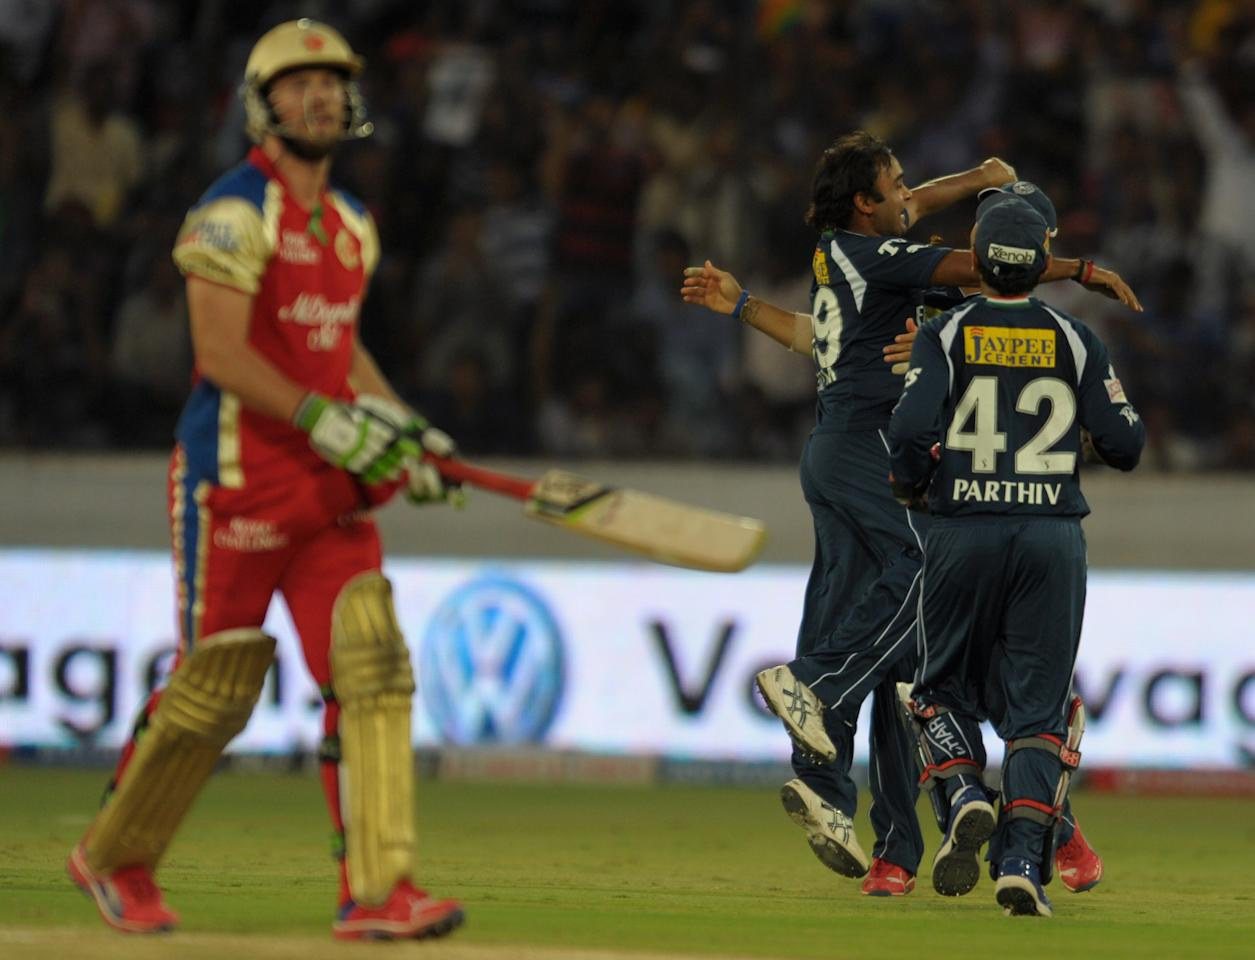 Deccan Chargers bowler Amit Mishra (C) celebrates with teammates after taking the wicket of Royal Challengers Bangalore  batsman AB De Villiers (L) during the IPL Twenty20 cricket match between Deccan Chargers and Royal Challengers Bangalore at Rajiv Gandhi International Stadium in Hyderabad on May 20, 2012.   RESTRICTED TO EDITORIAL USE. MOBILE USE WITHIN NEWS PACKAGE AFP PHOTO/Noah SEELAM        (Photo credit should read NOAH SEELAM/AFP/GettyImages)